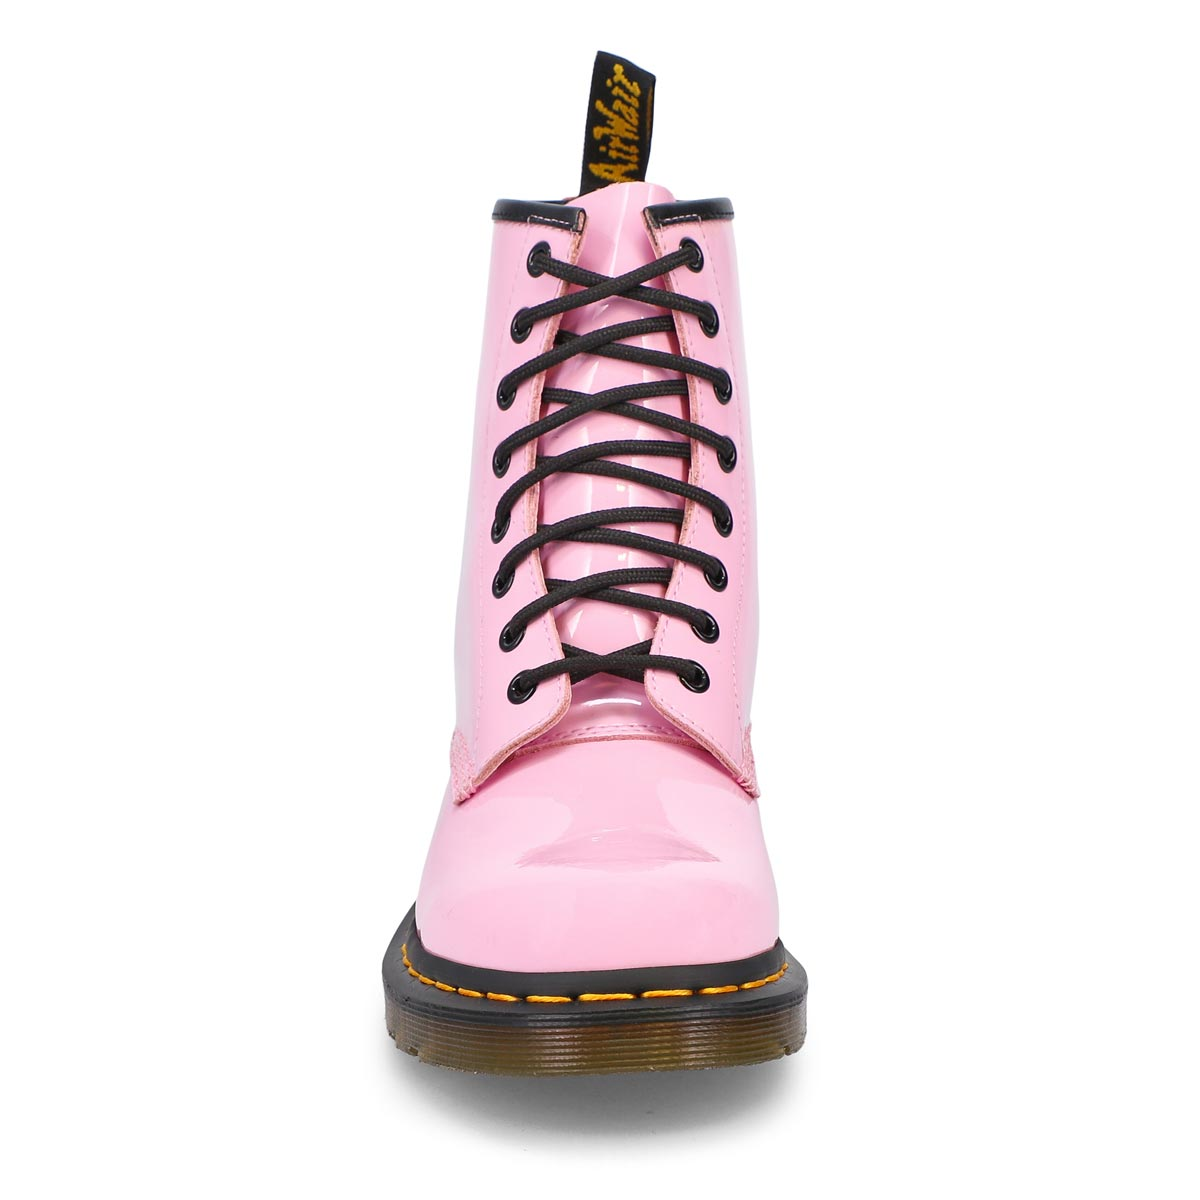 Women's 1460 8-Eye Leather Boot - Pale Pink